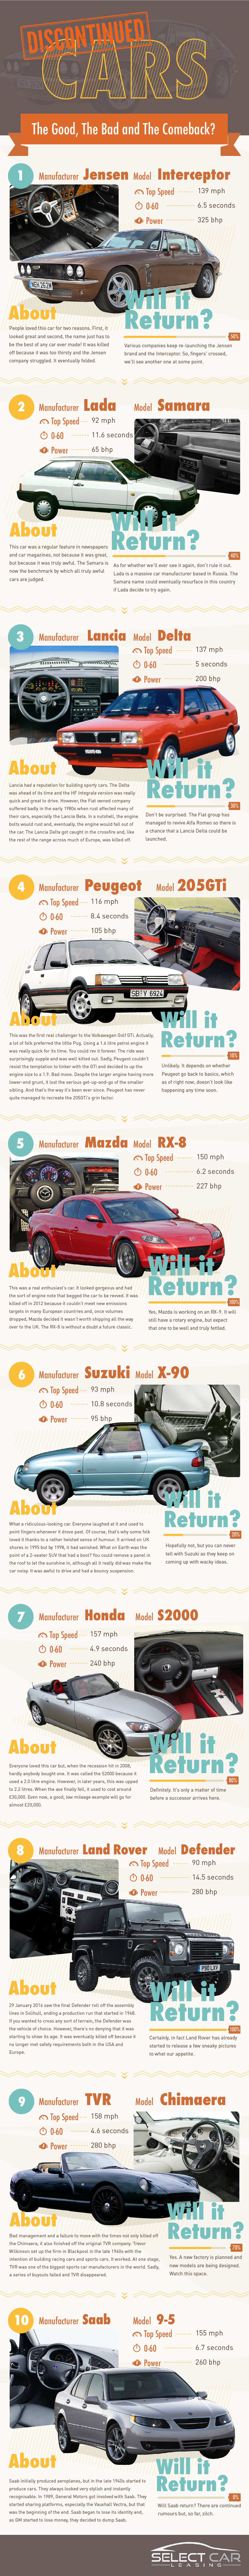 Cars That Are Not Manufactured Anymore - Infographic